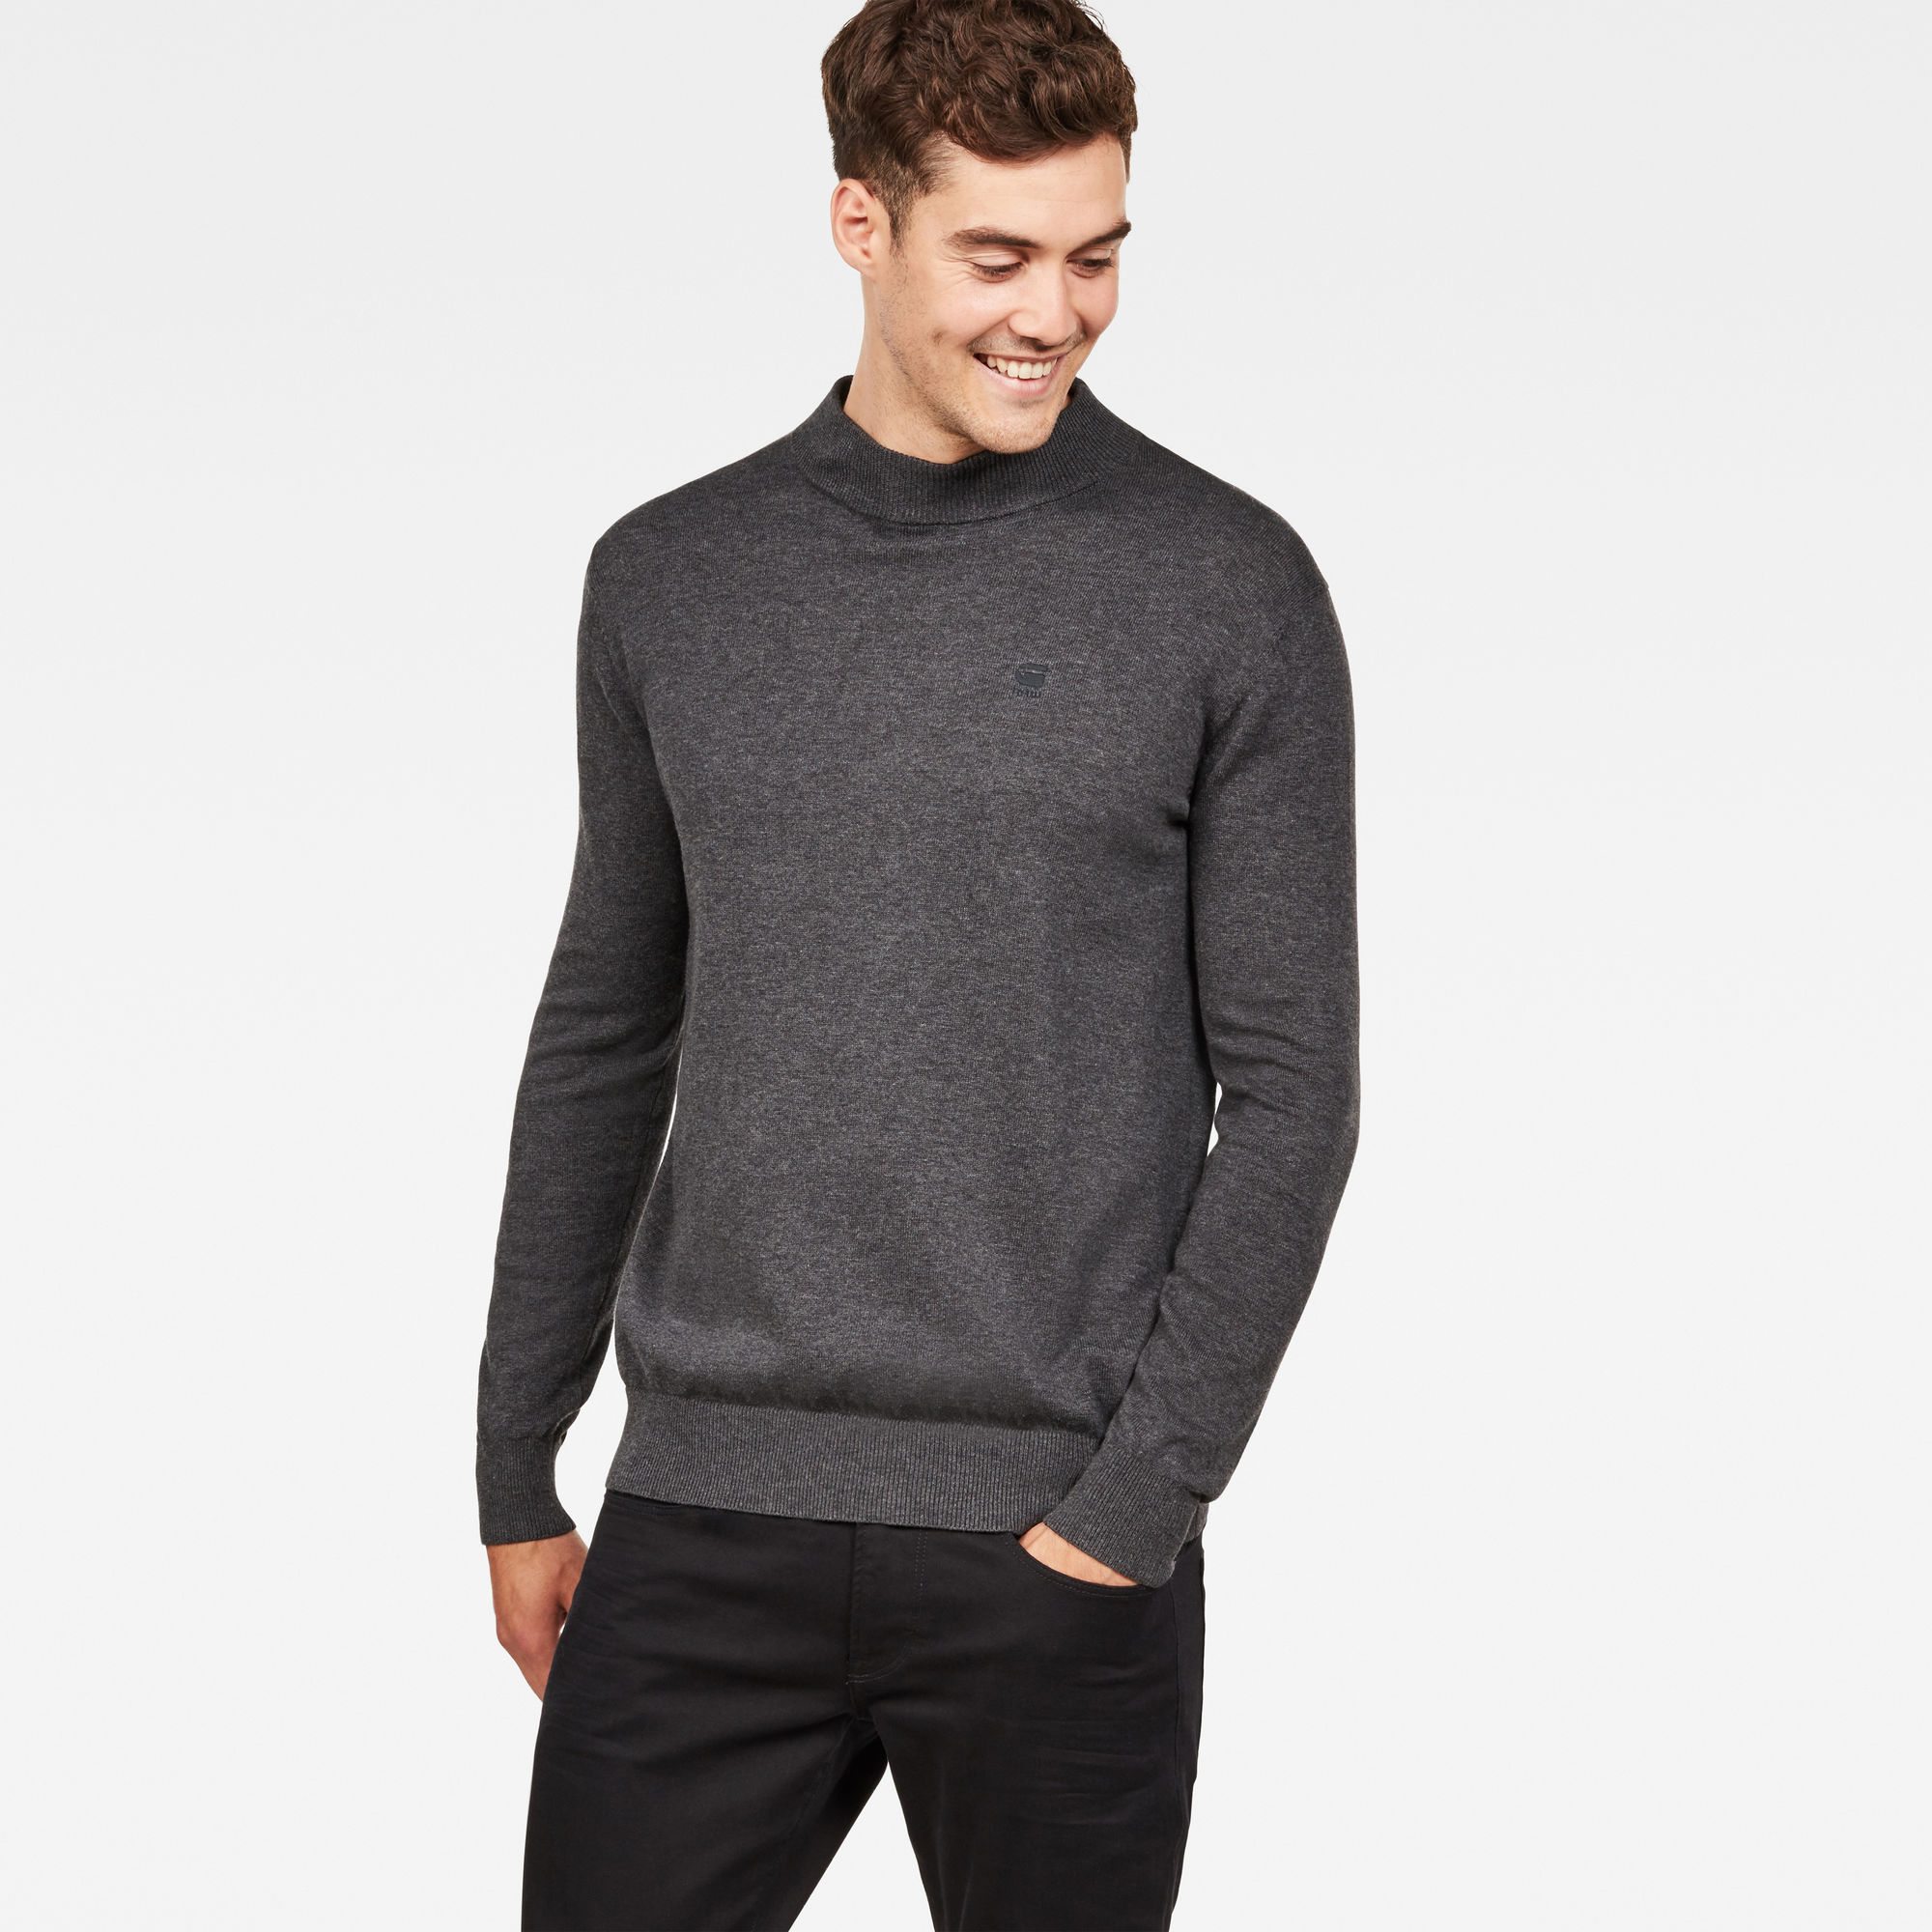 Image of G Star Raw Core Mock Turtle Knit